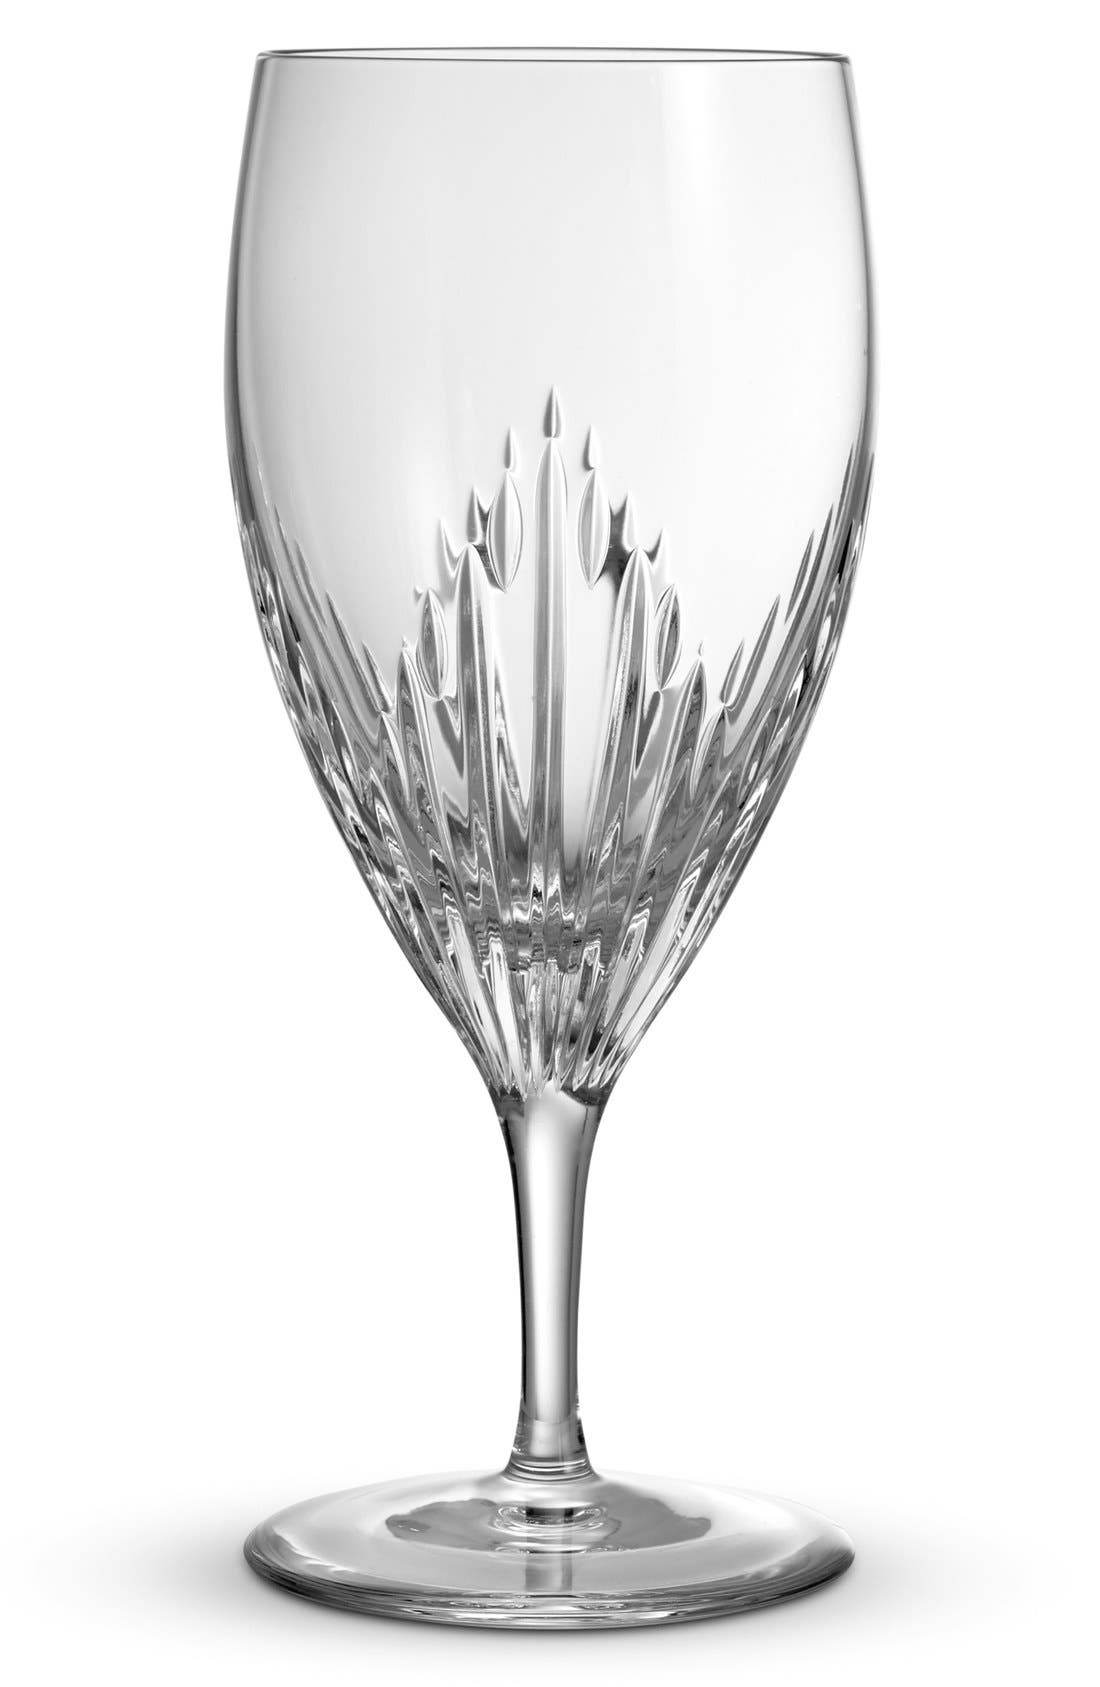 MoniqueLhuillierWaterford 'Stardust' Lead Crystal Iced Beverage Glass,                         Main,                         color, Clear